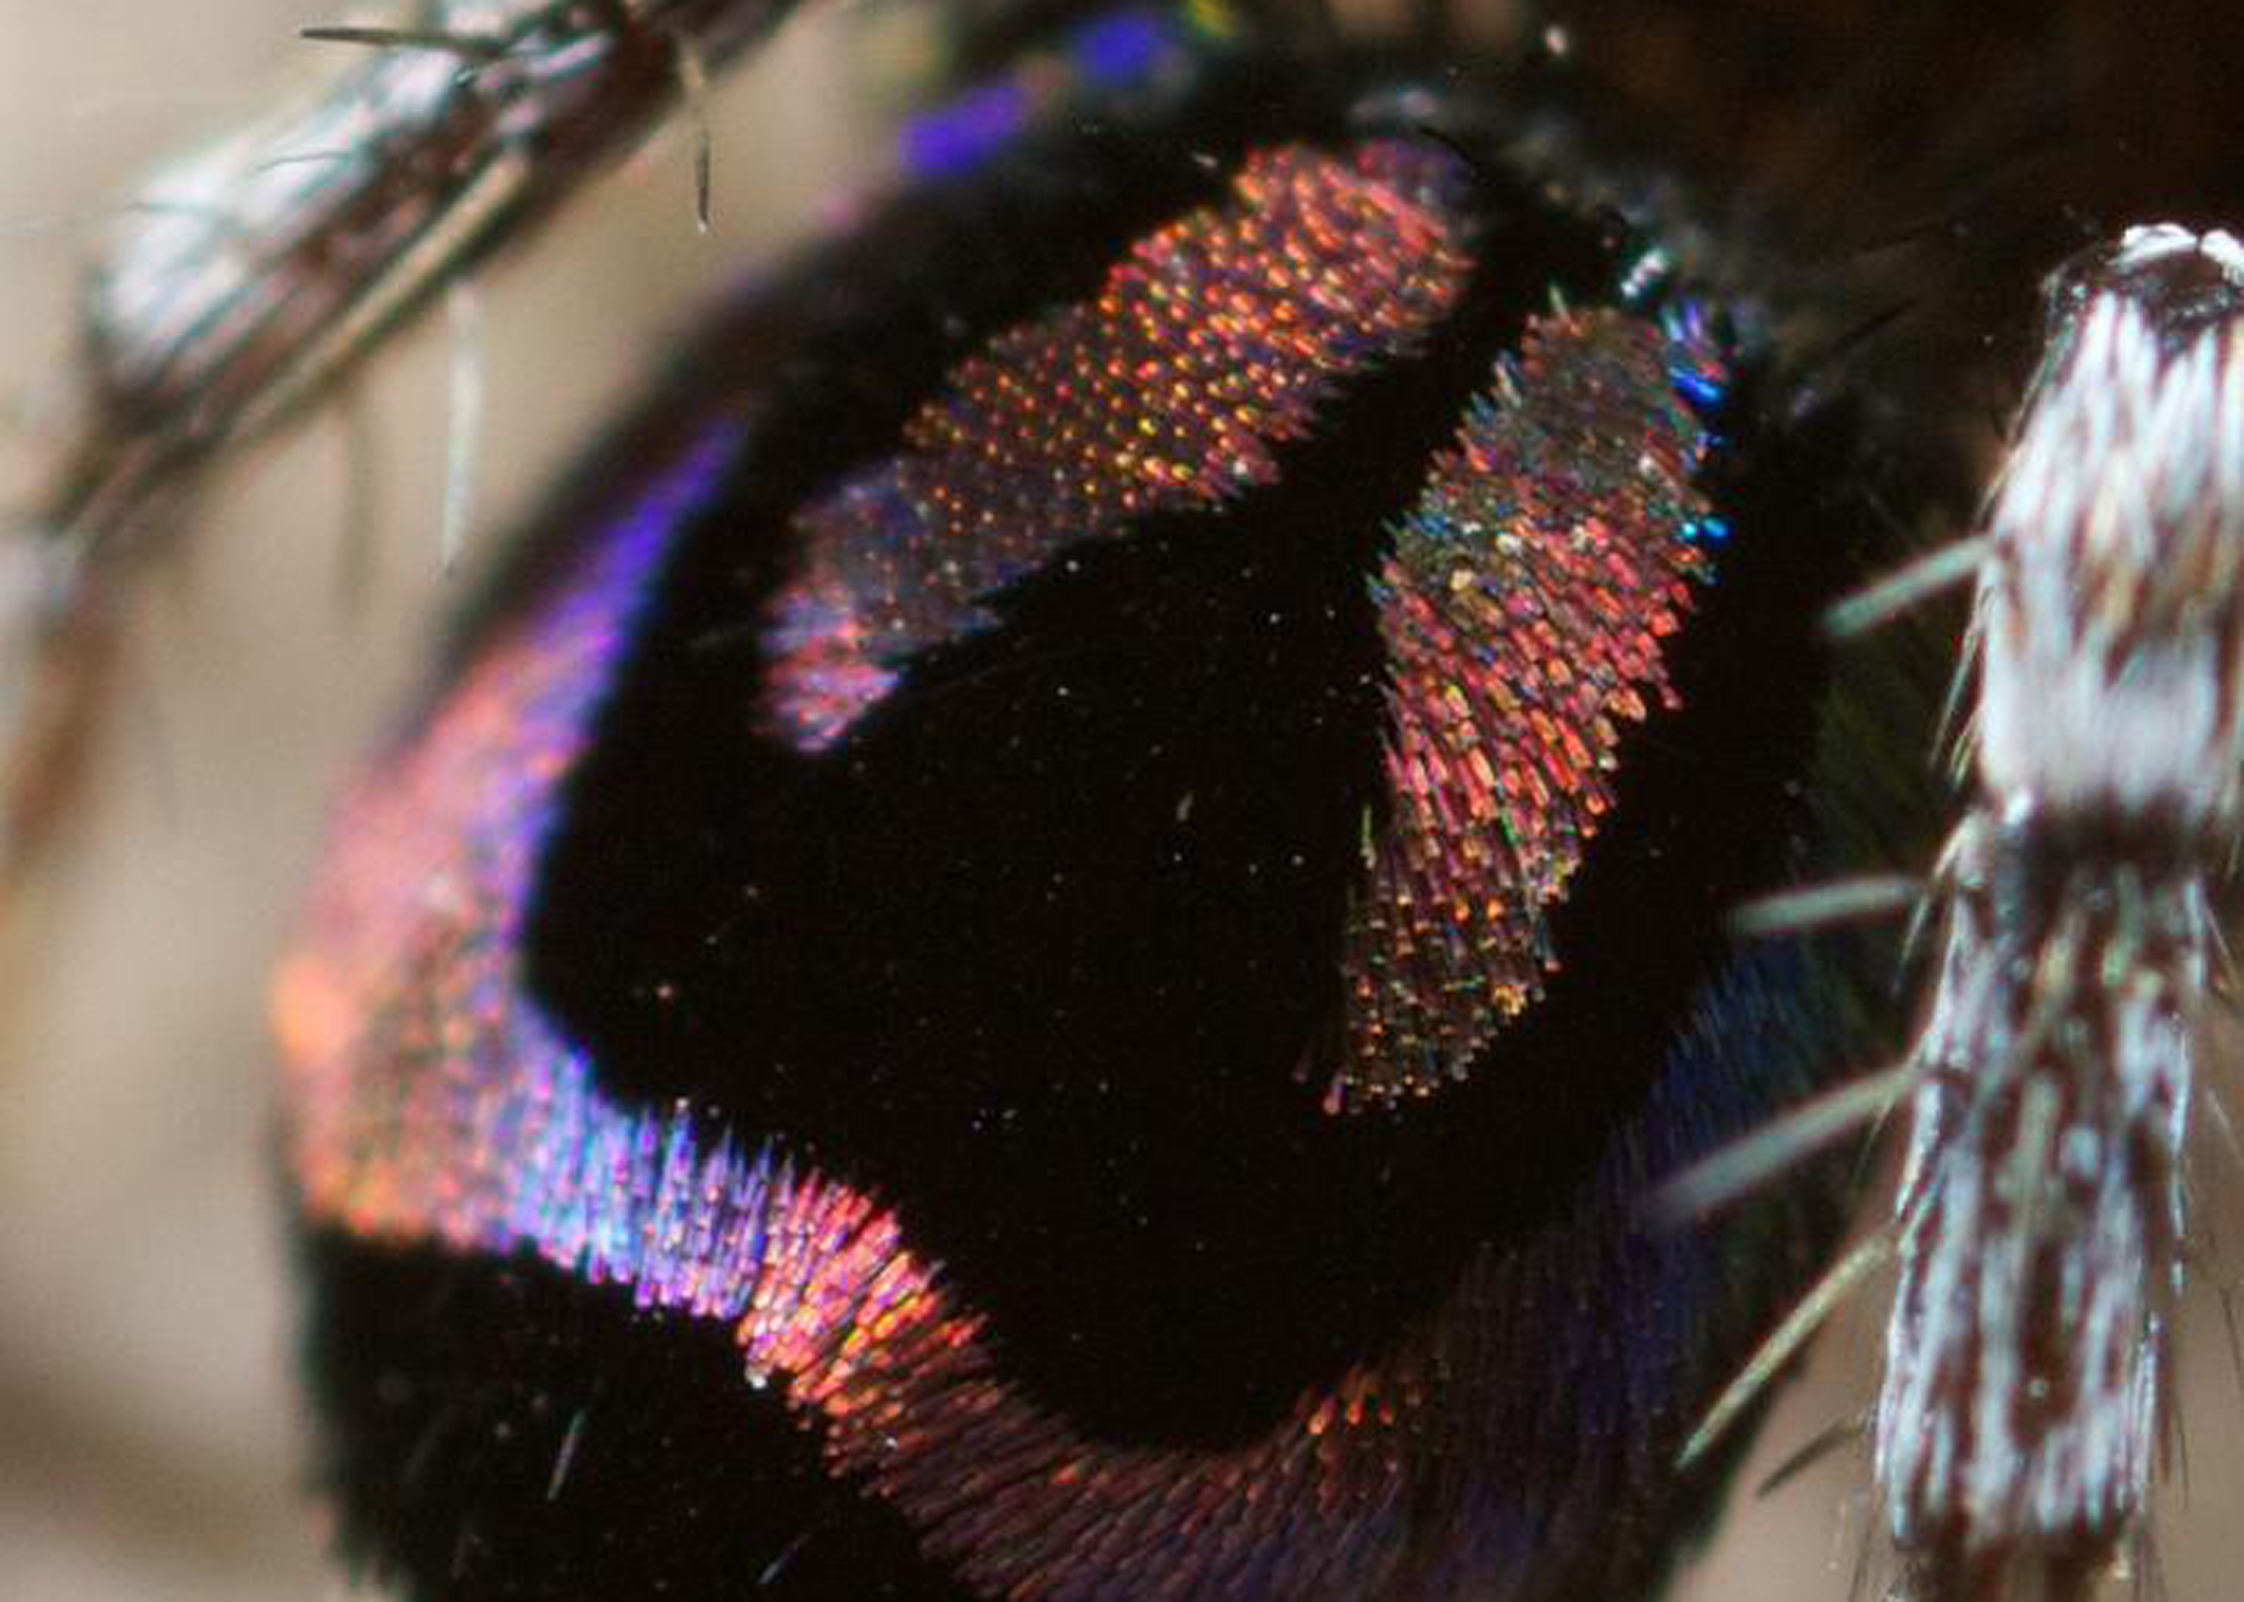 Rainbow peacock spider.